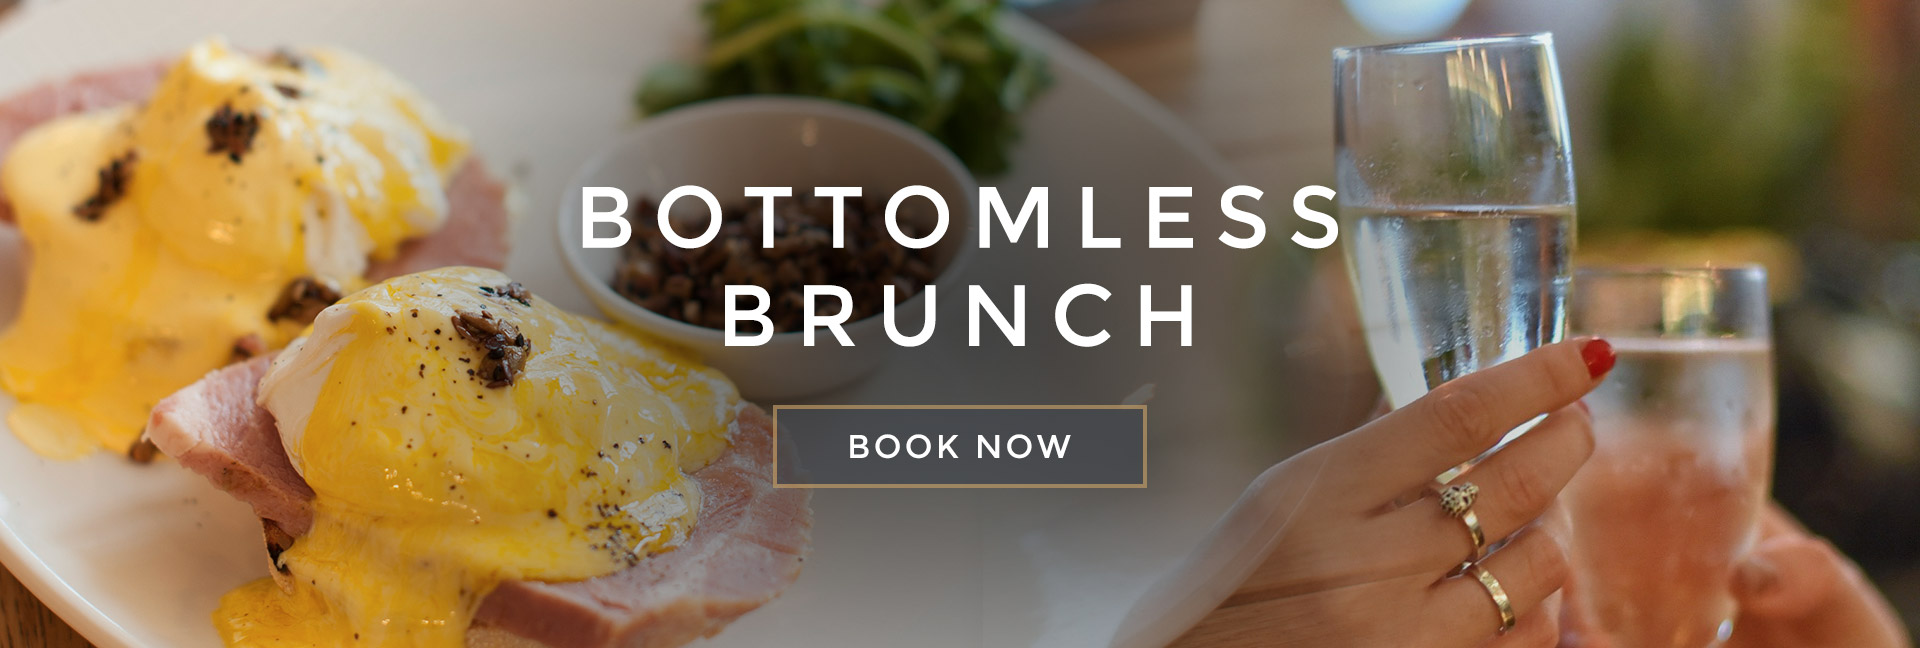 Bottomless Brunch at All Bar One Battersea - Book now